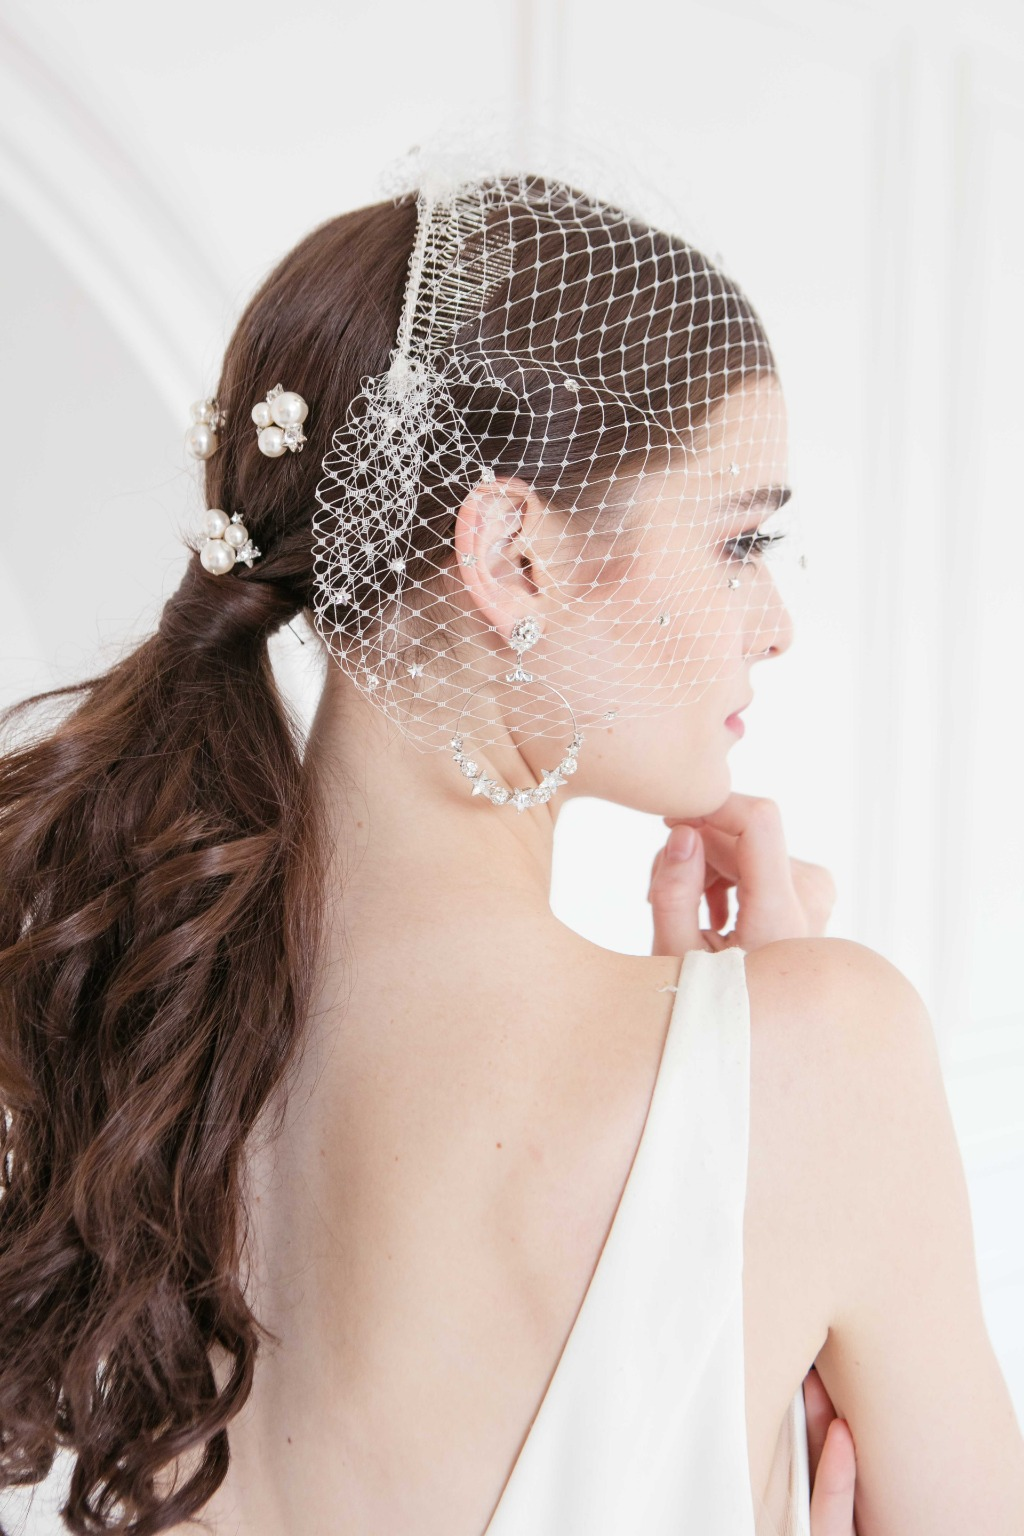 The delicate bridal hair accessories are perfect for your big day! Explore more amazing wedding accessories from our 2020 collection